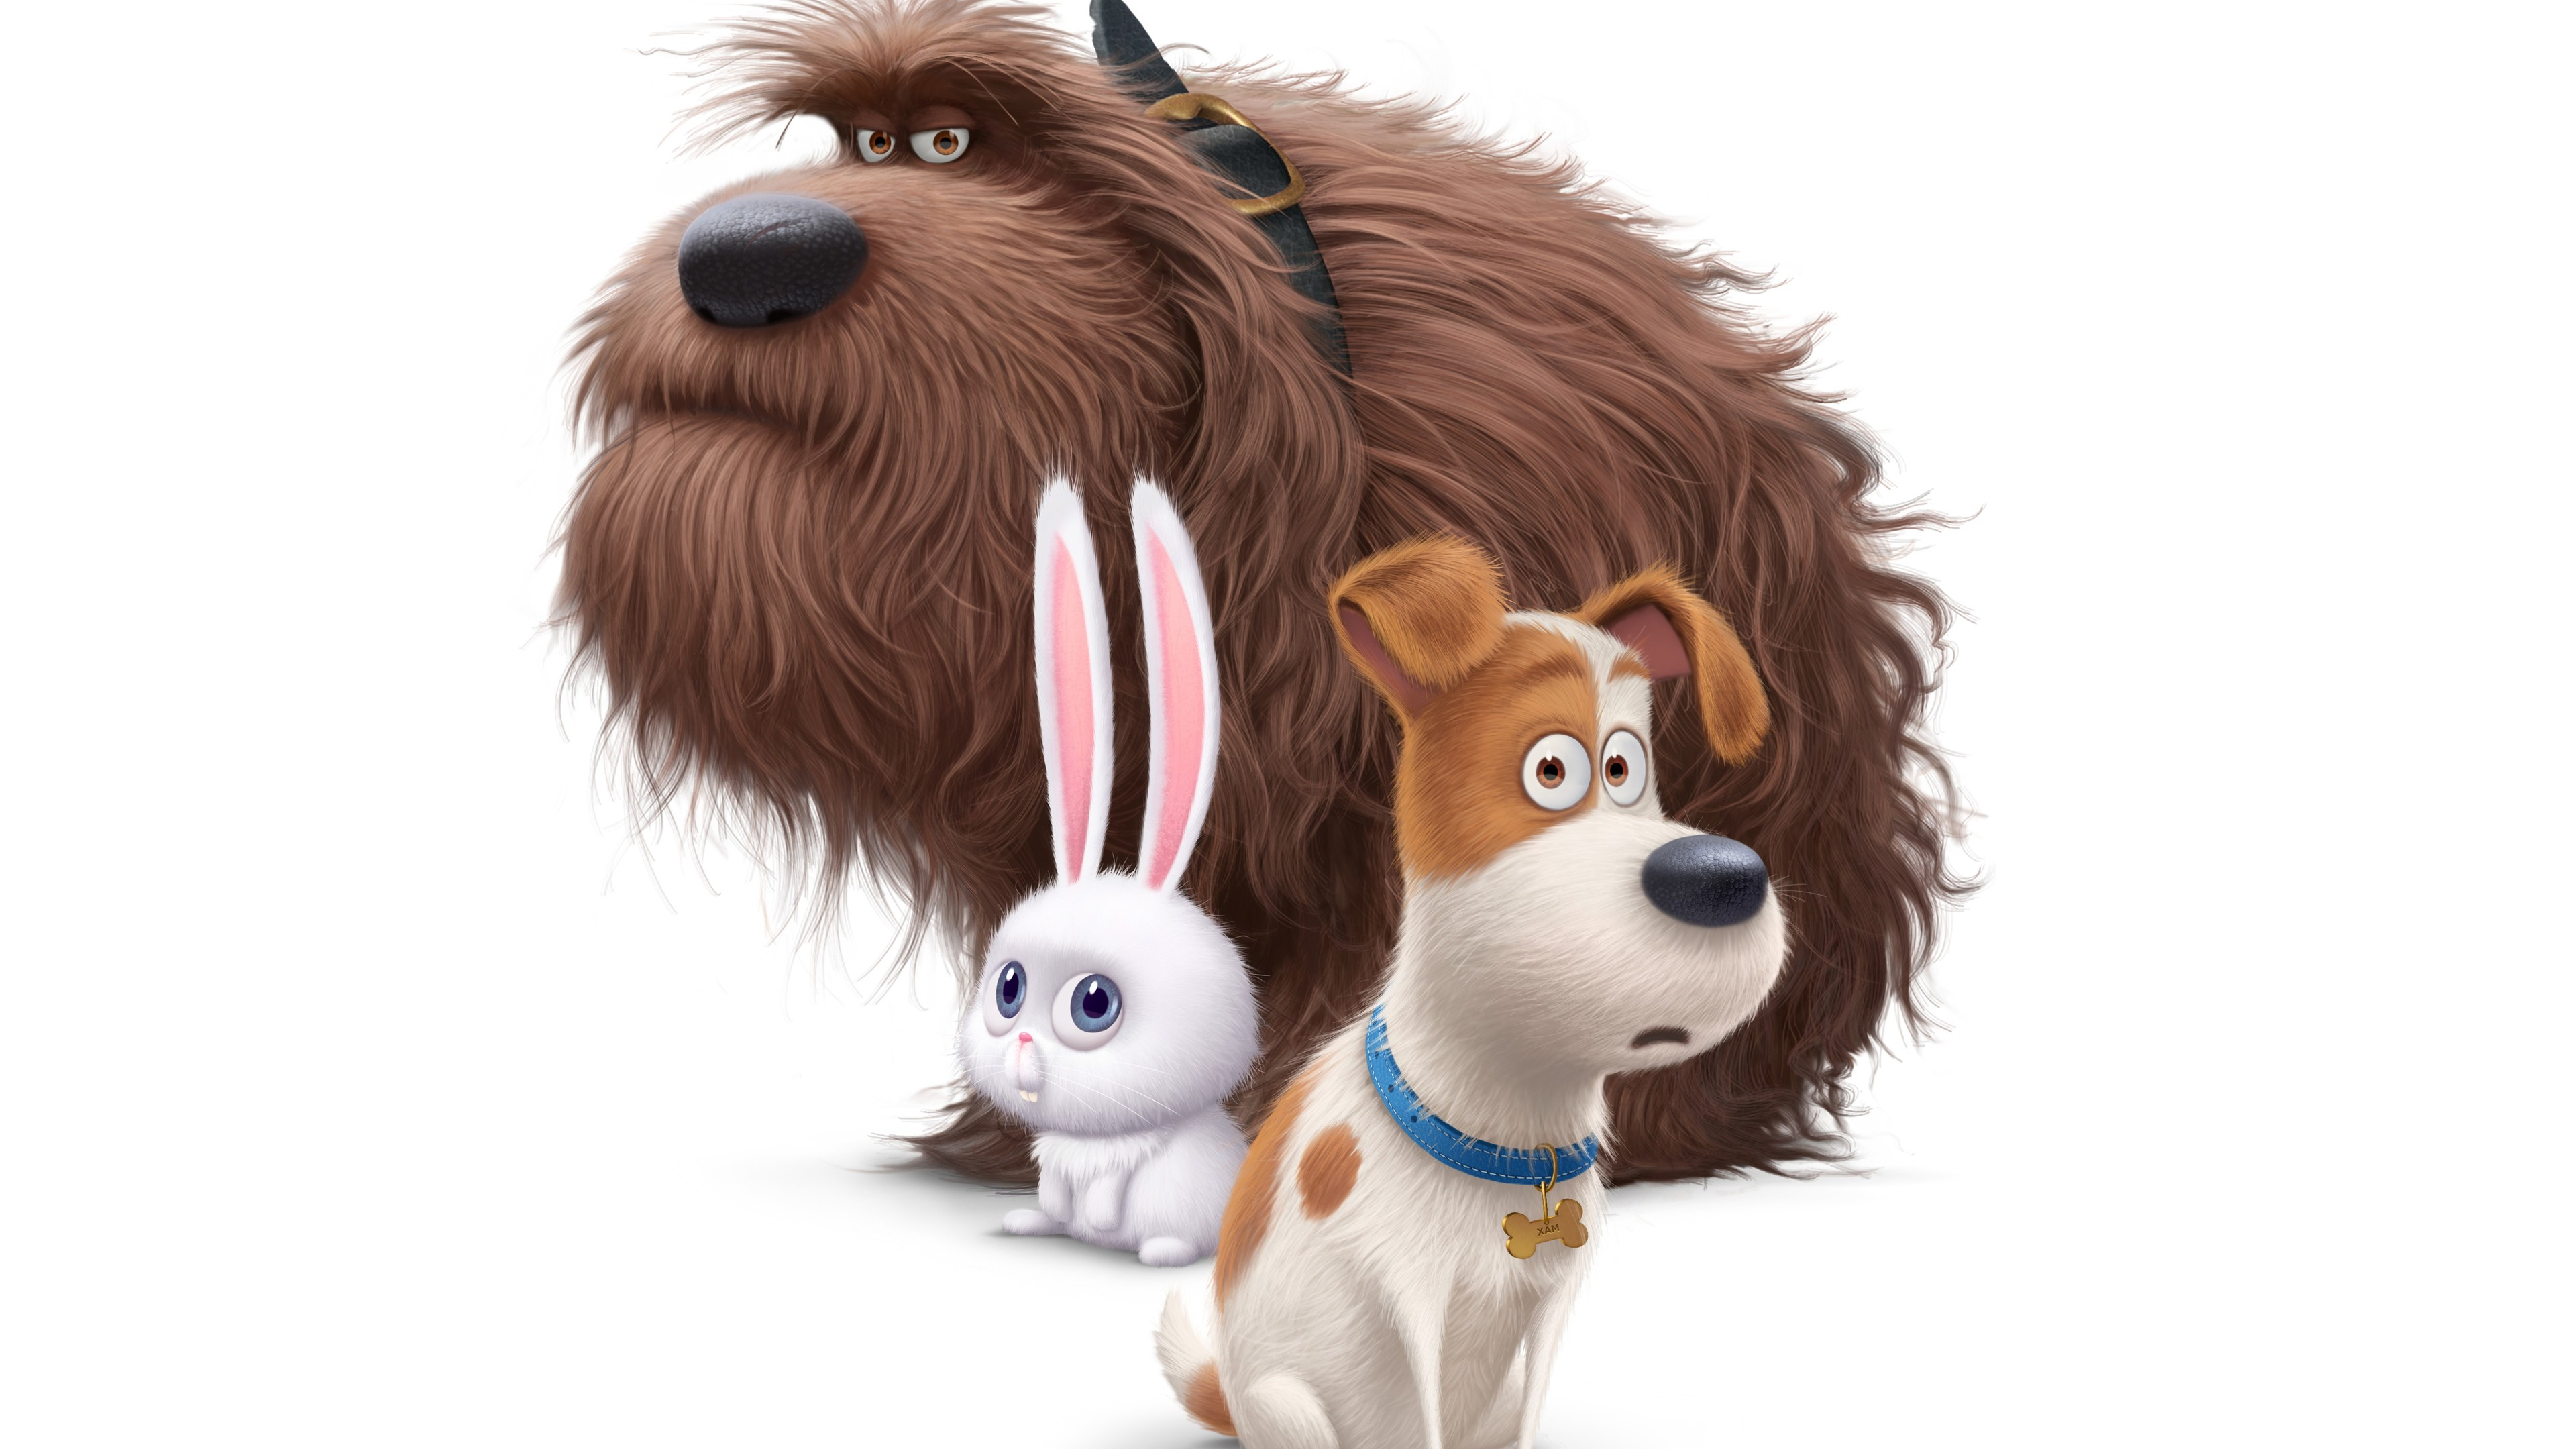 Secret Life Of Pets Wallpaper: The Secrete Life Of Pets Movie Dogs, HD Movies, 4k